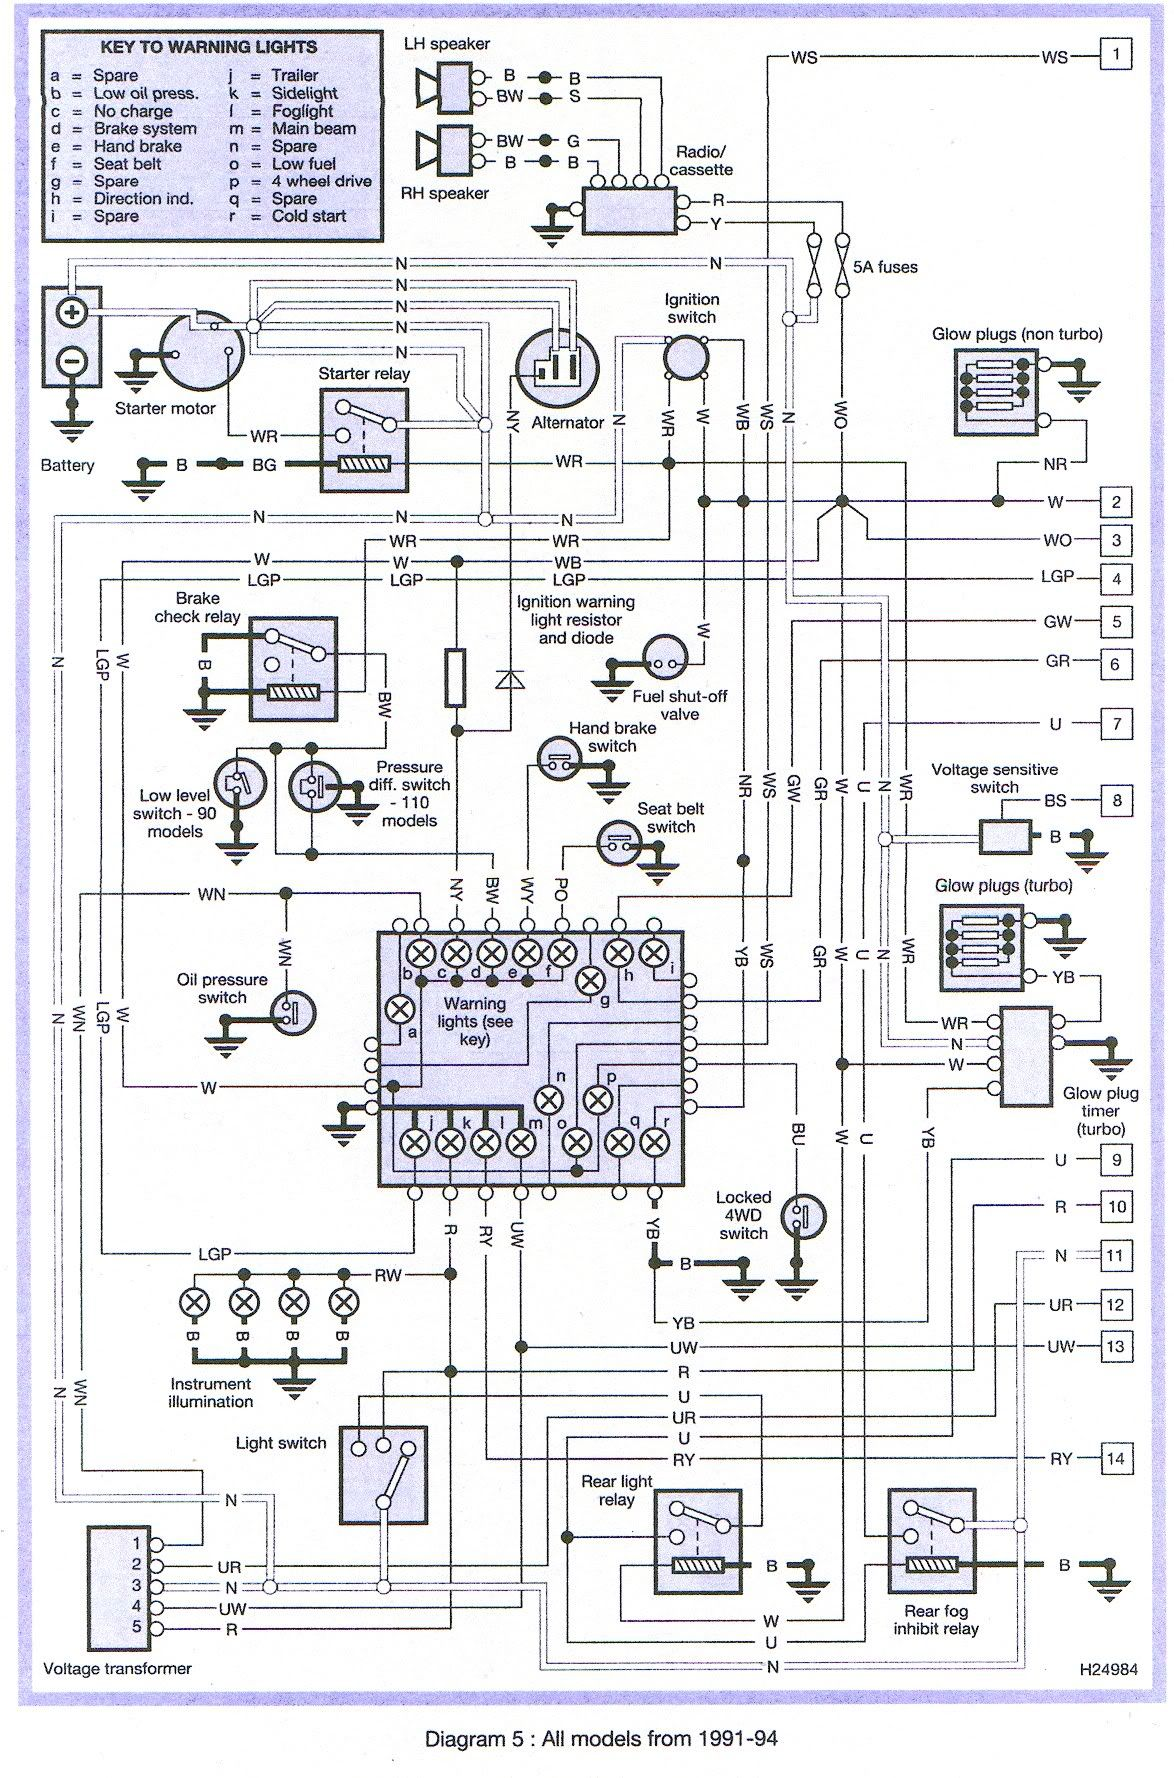 small resolution of jeep patriot 2008 fuse box diagram